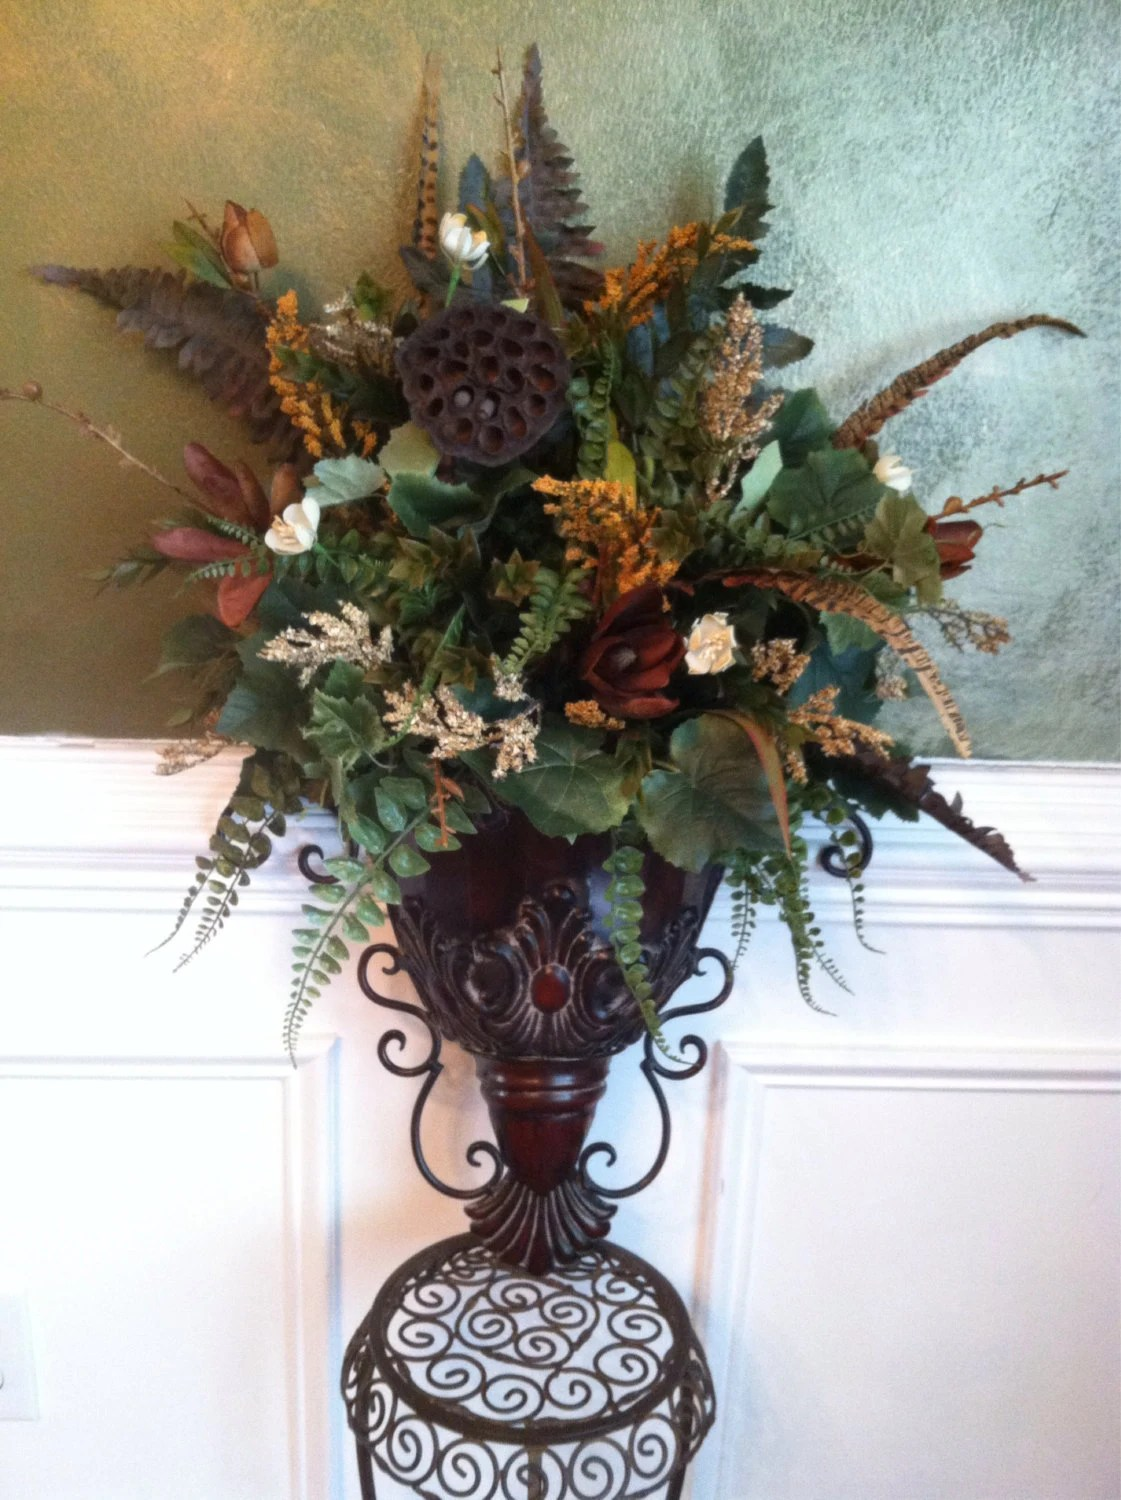 Elegant Traditional Italian Old World Decor by ... on Wall Sconce Floral Arrangements Arrangement id=57937